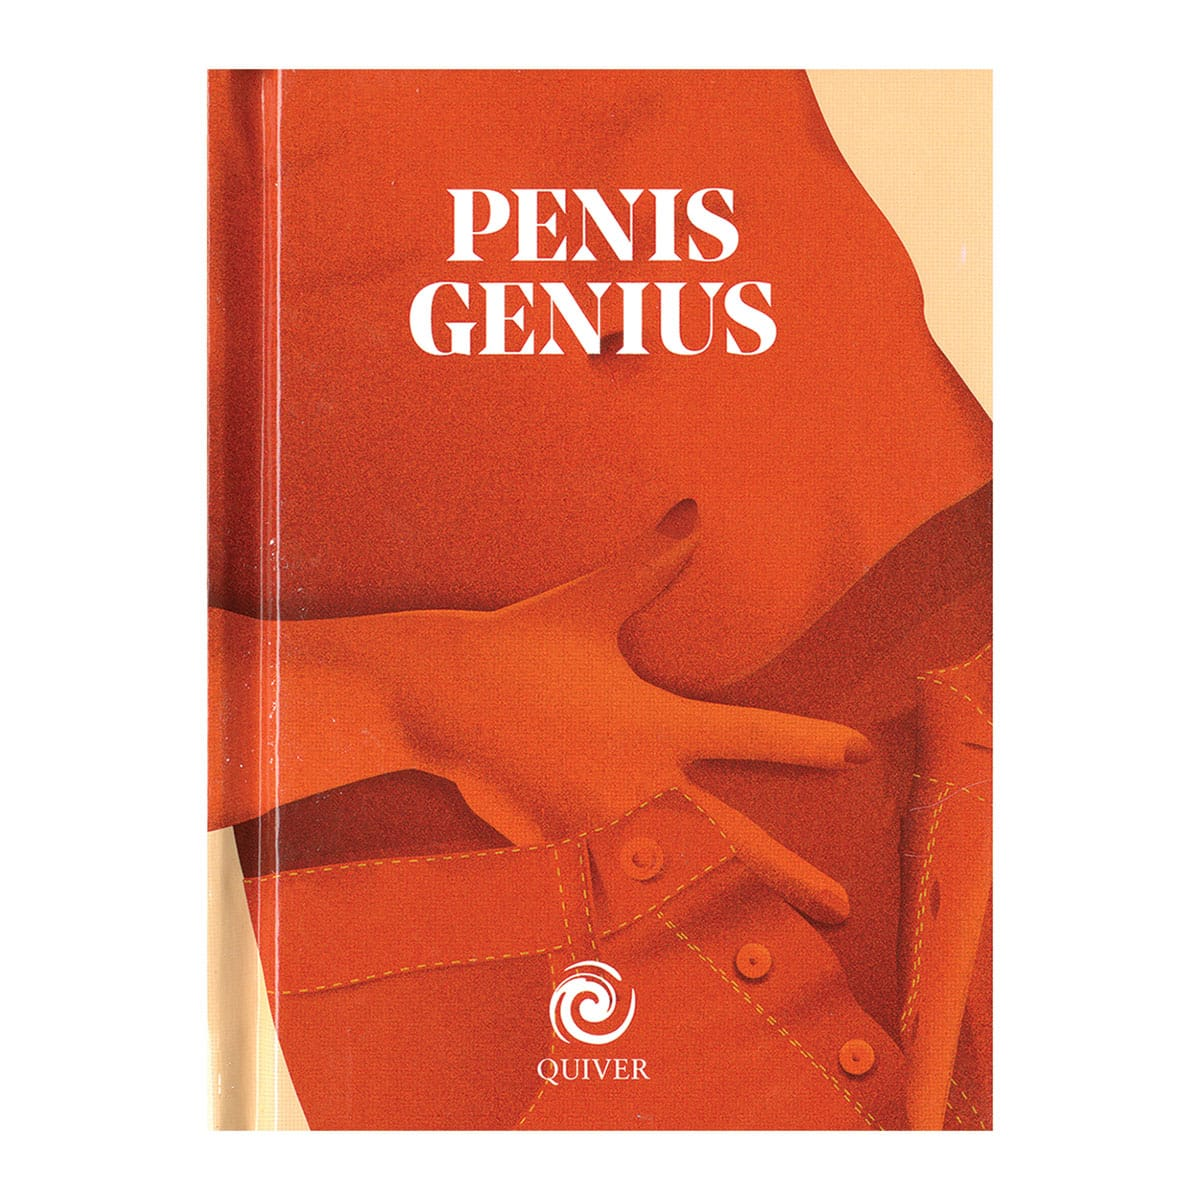 Penis Genius: The Best Tips and Tricks for Working His Stick by Quiver - rolik